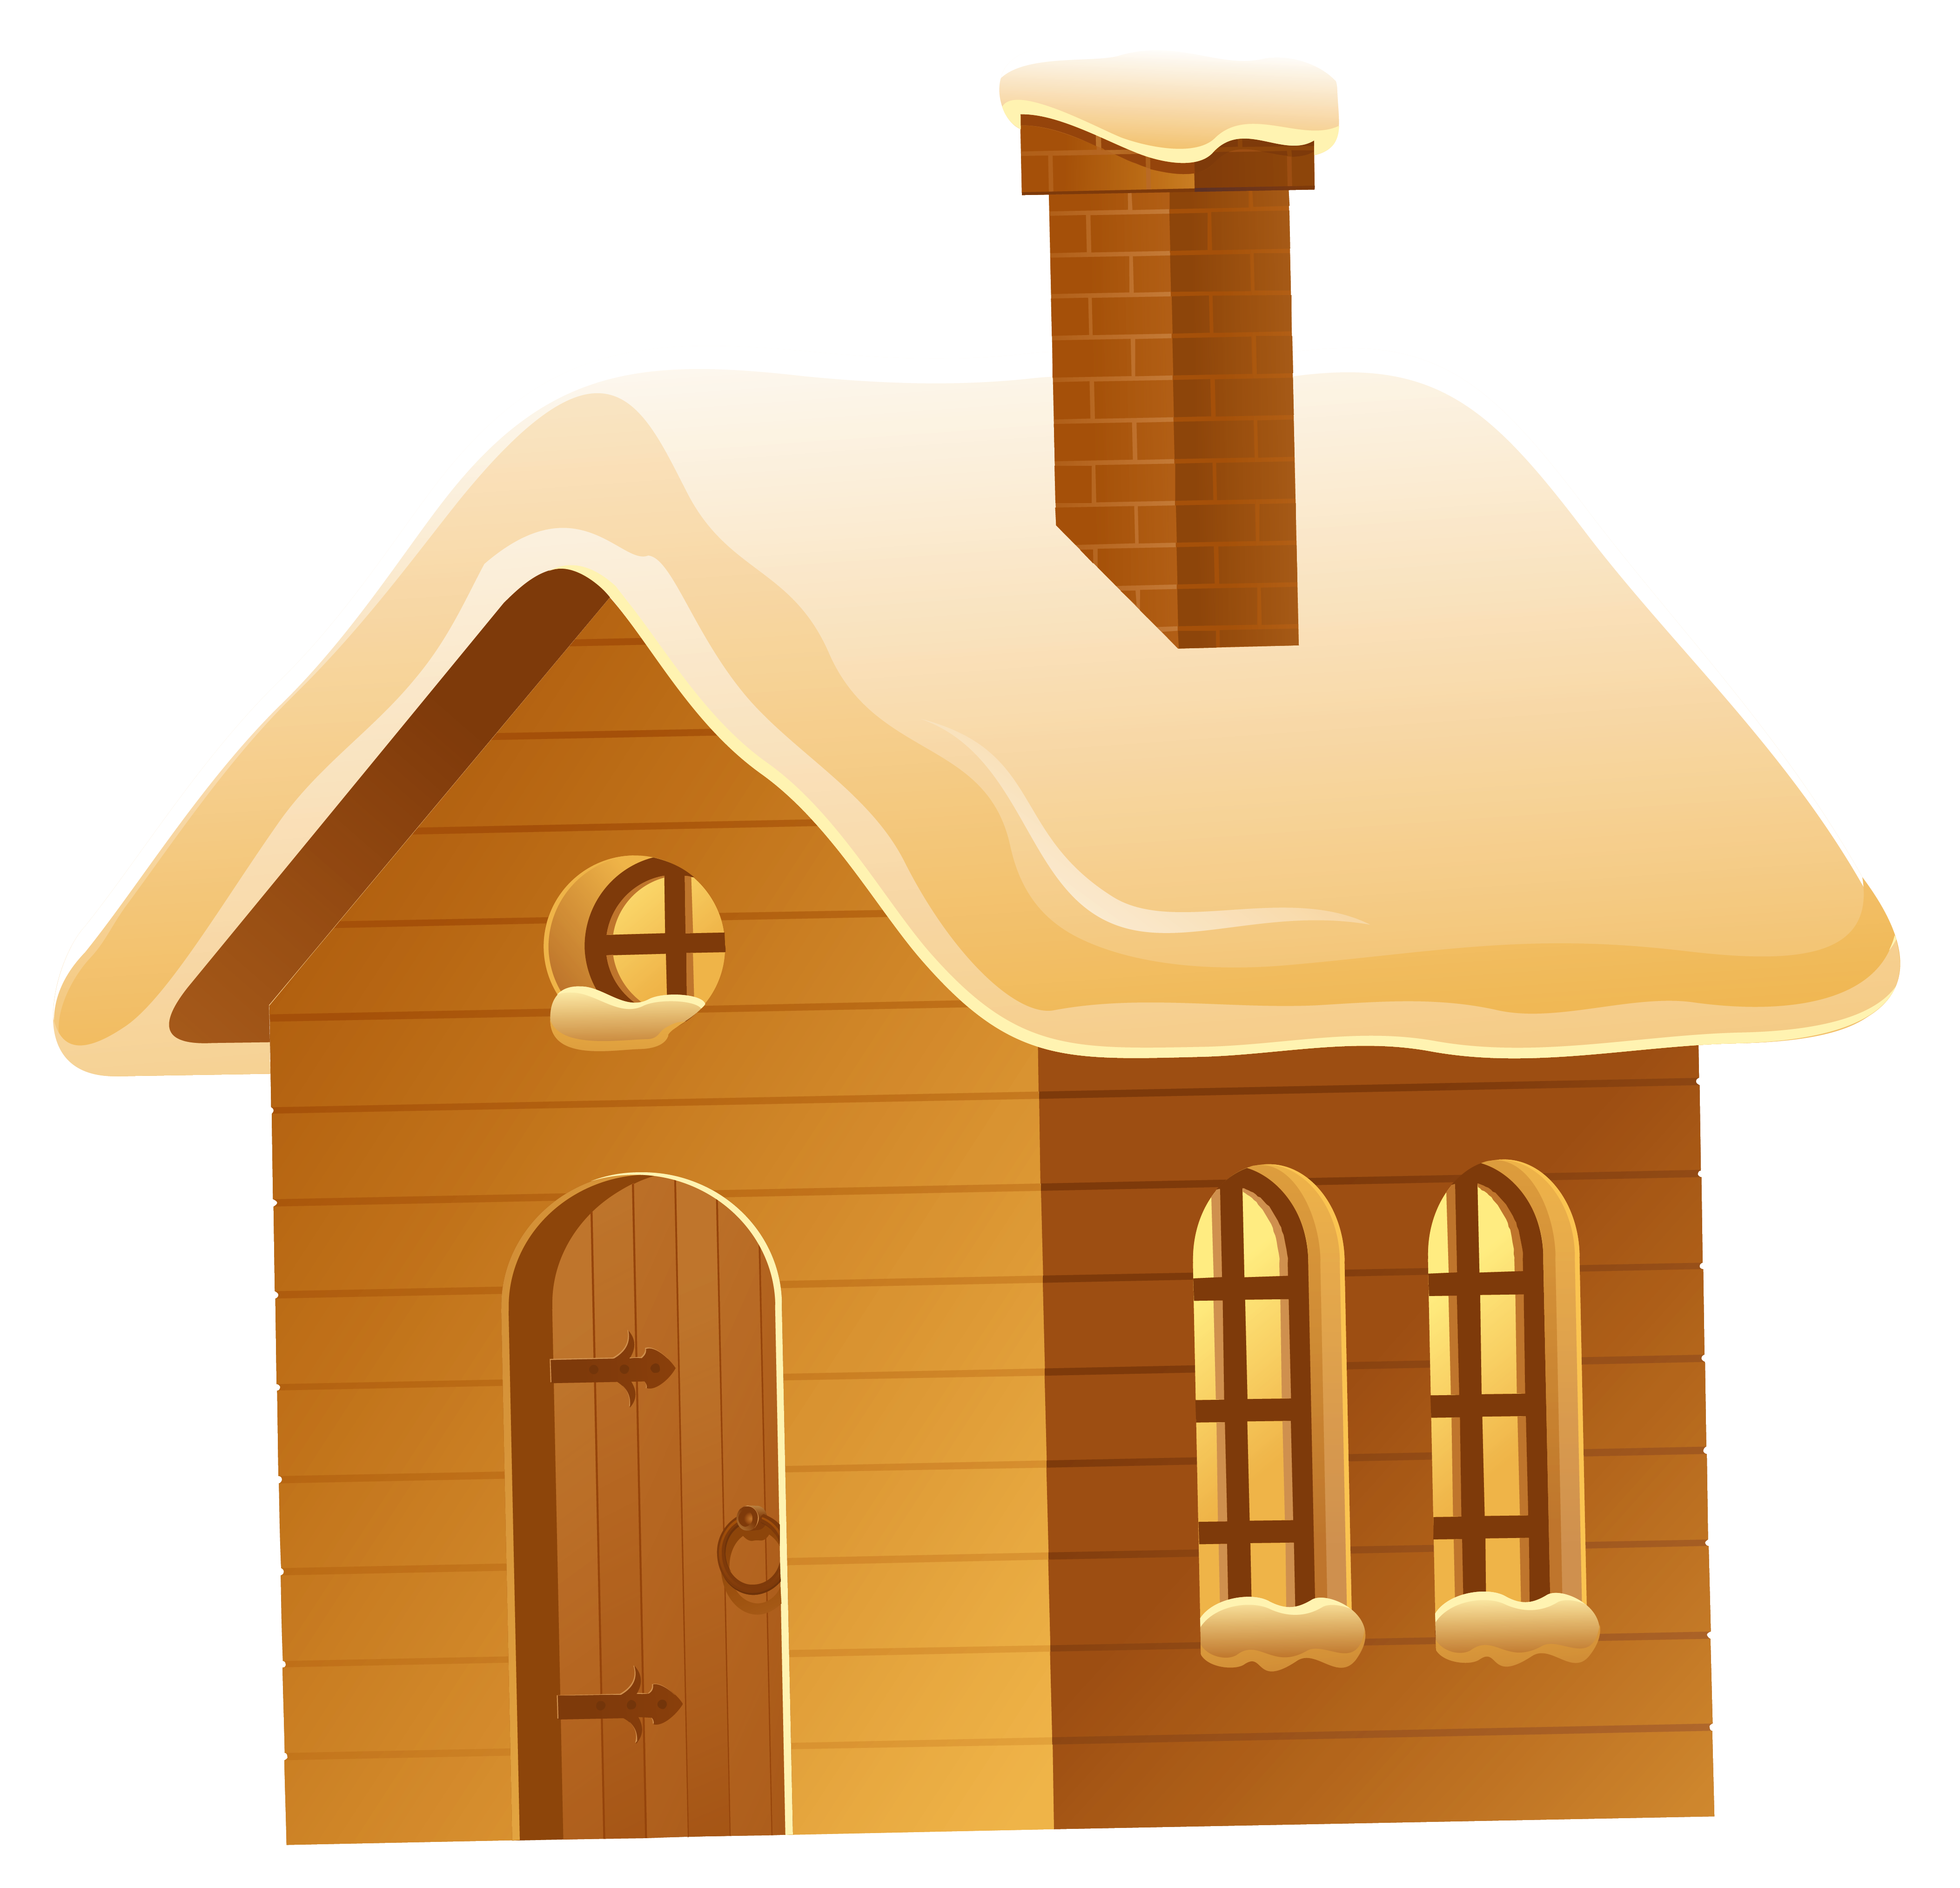 Winter house png picture. Houses clipart brown